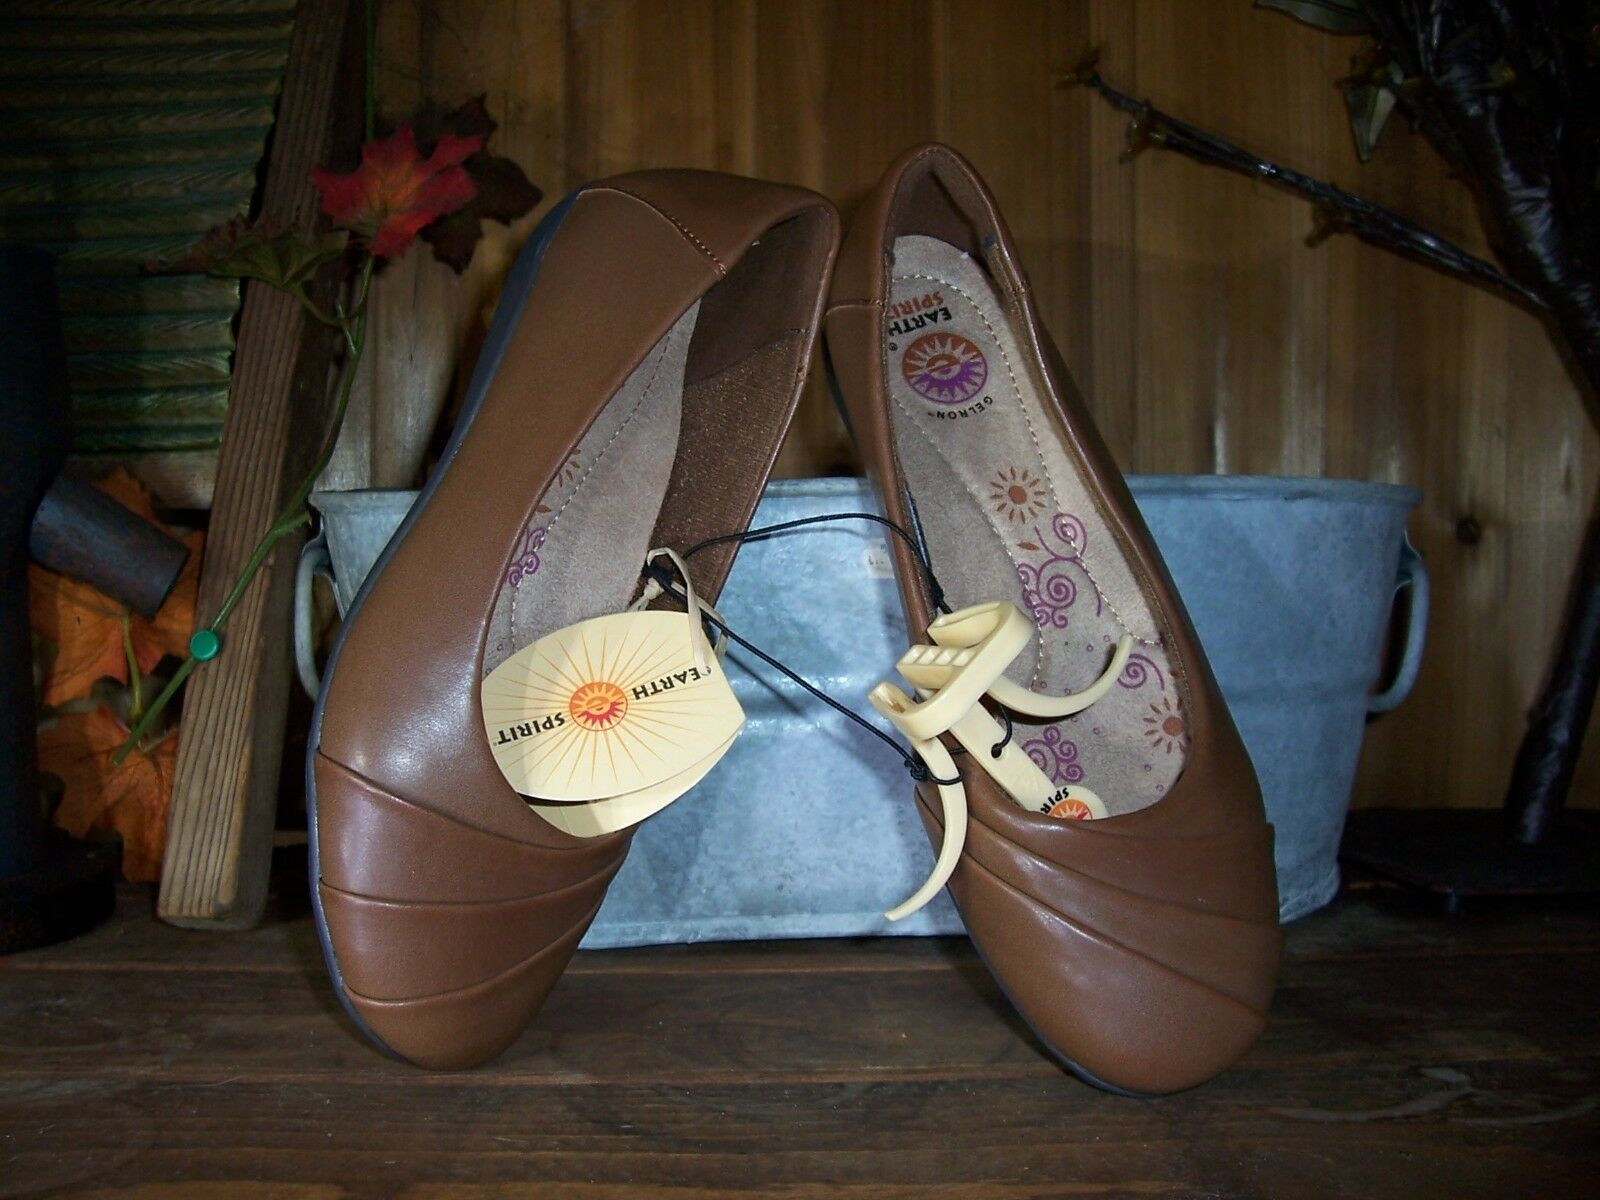 EARTH SPIRIT LADIES CASUAL SLIPPERS SHOES SIZE 6.5 BROWN CASUAL SUMMER SHOES NEW